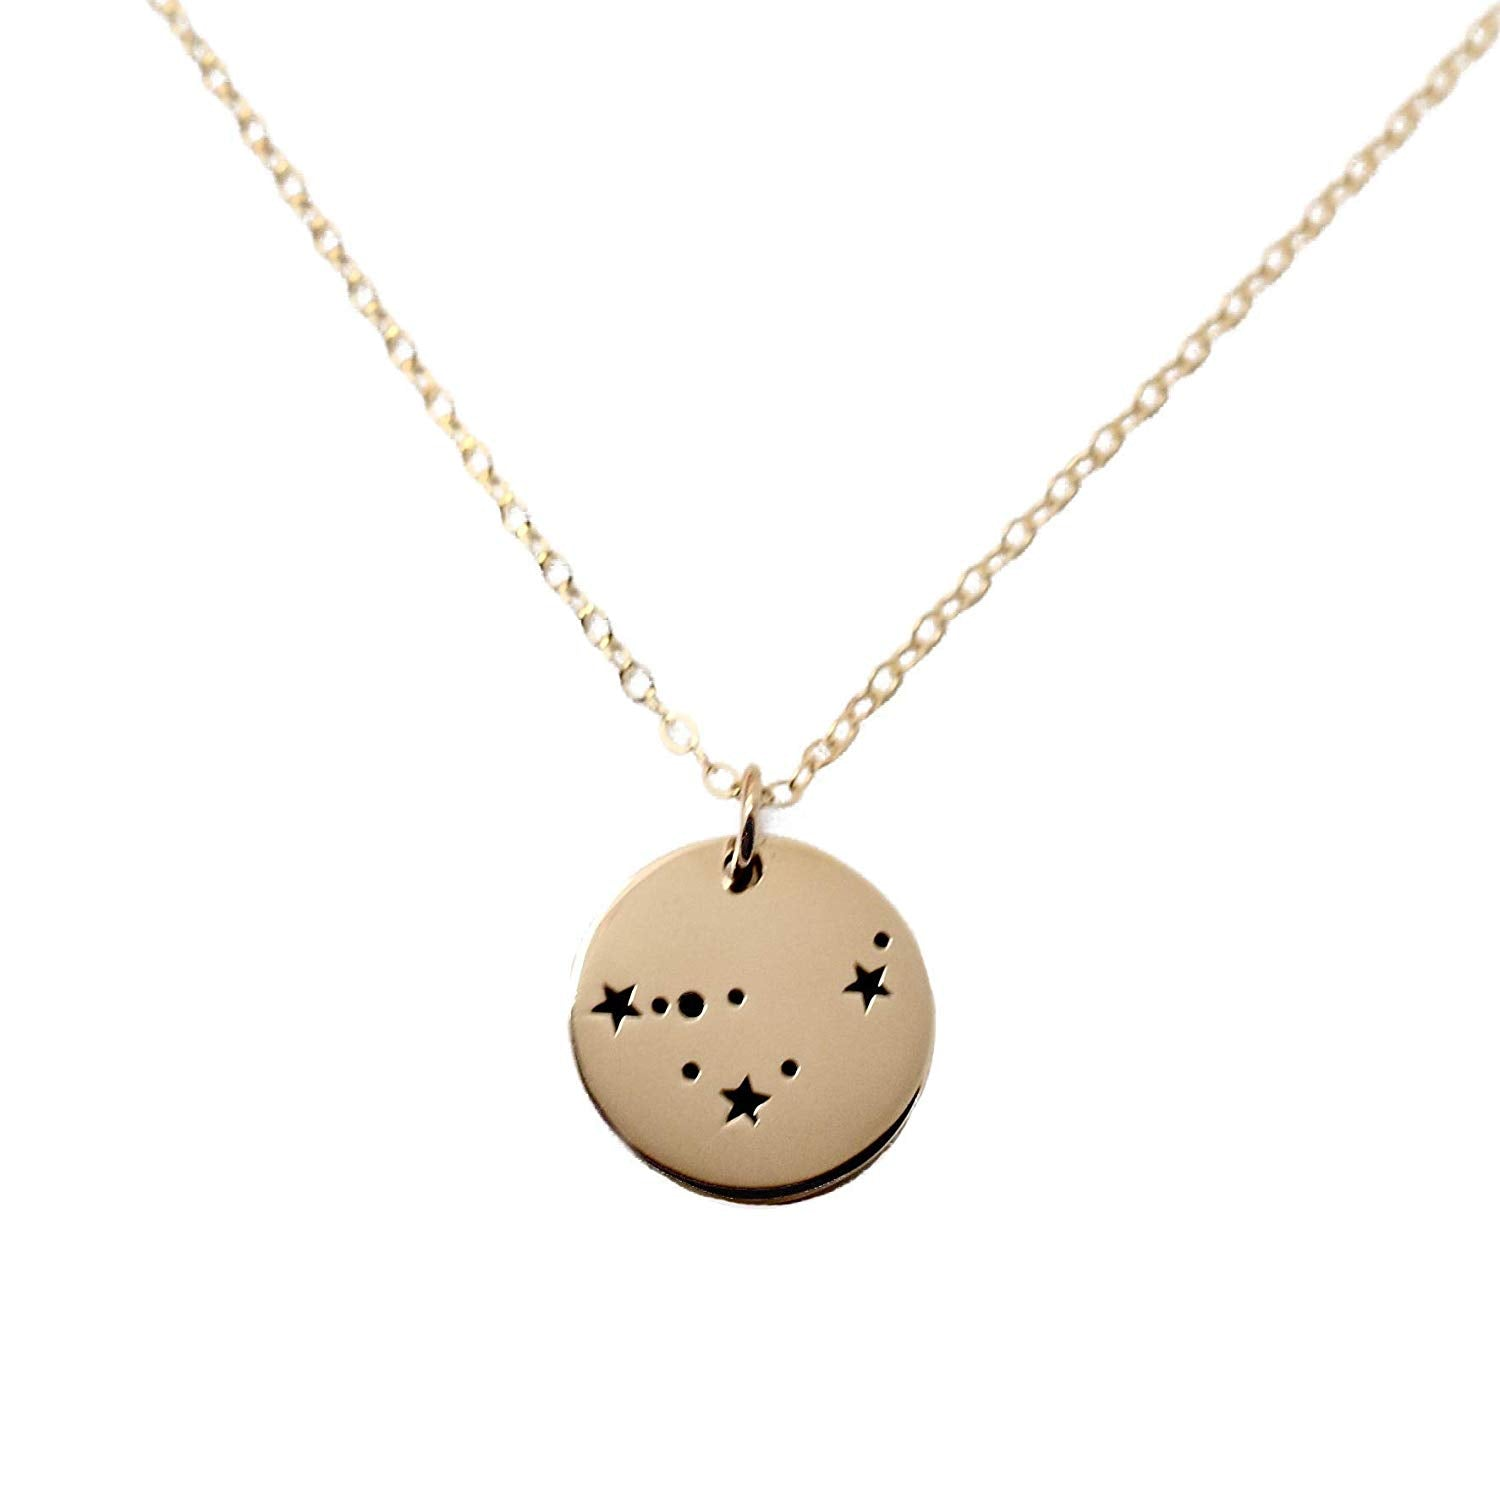 Capricorn Zodiac Sign 14K Gold Filled Constellation Necklace - Love It Personalized